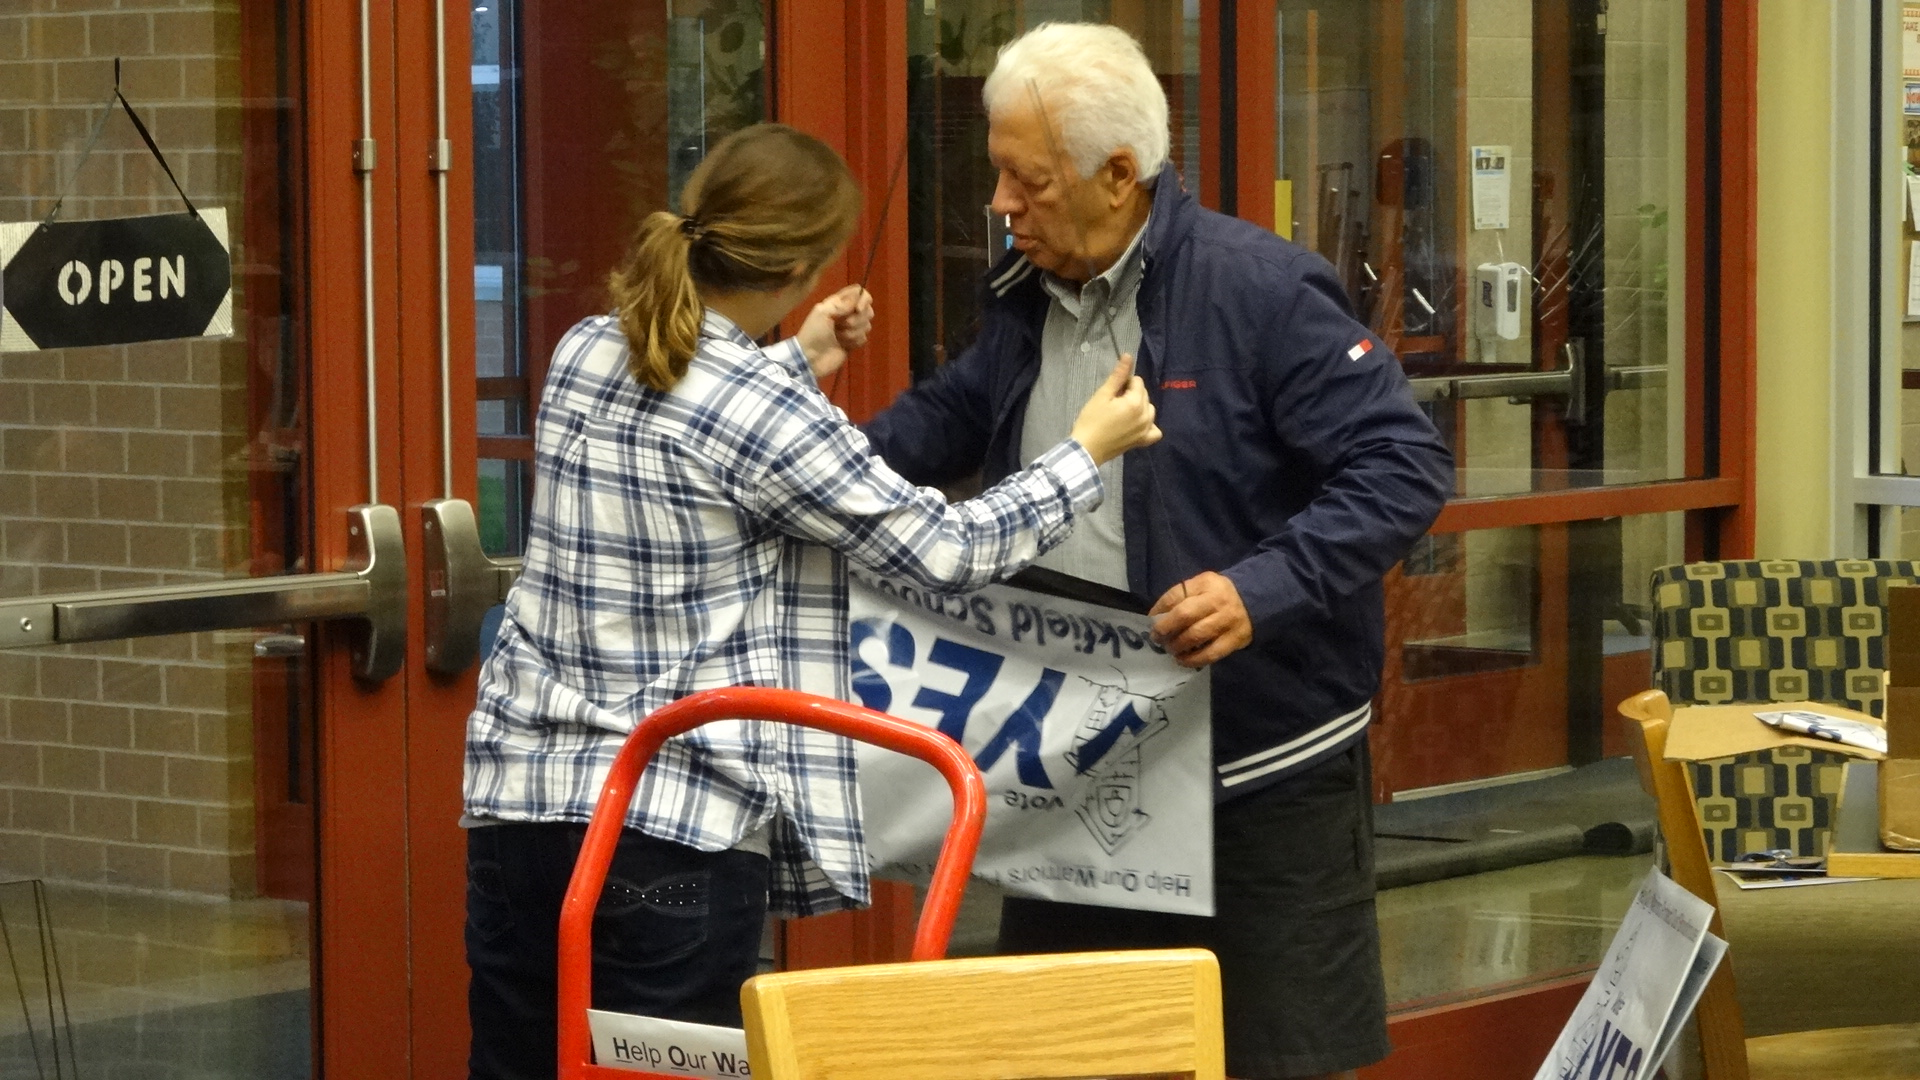 Brookfield Middle School eighth-grade teacher Marissa Miller and Brookfield Board of Education member George Economides assemble a sign promoting the school's request for a permanent improvement levy.